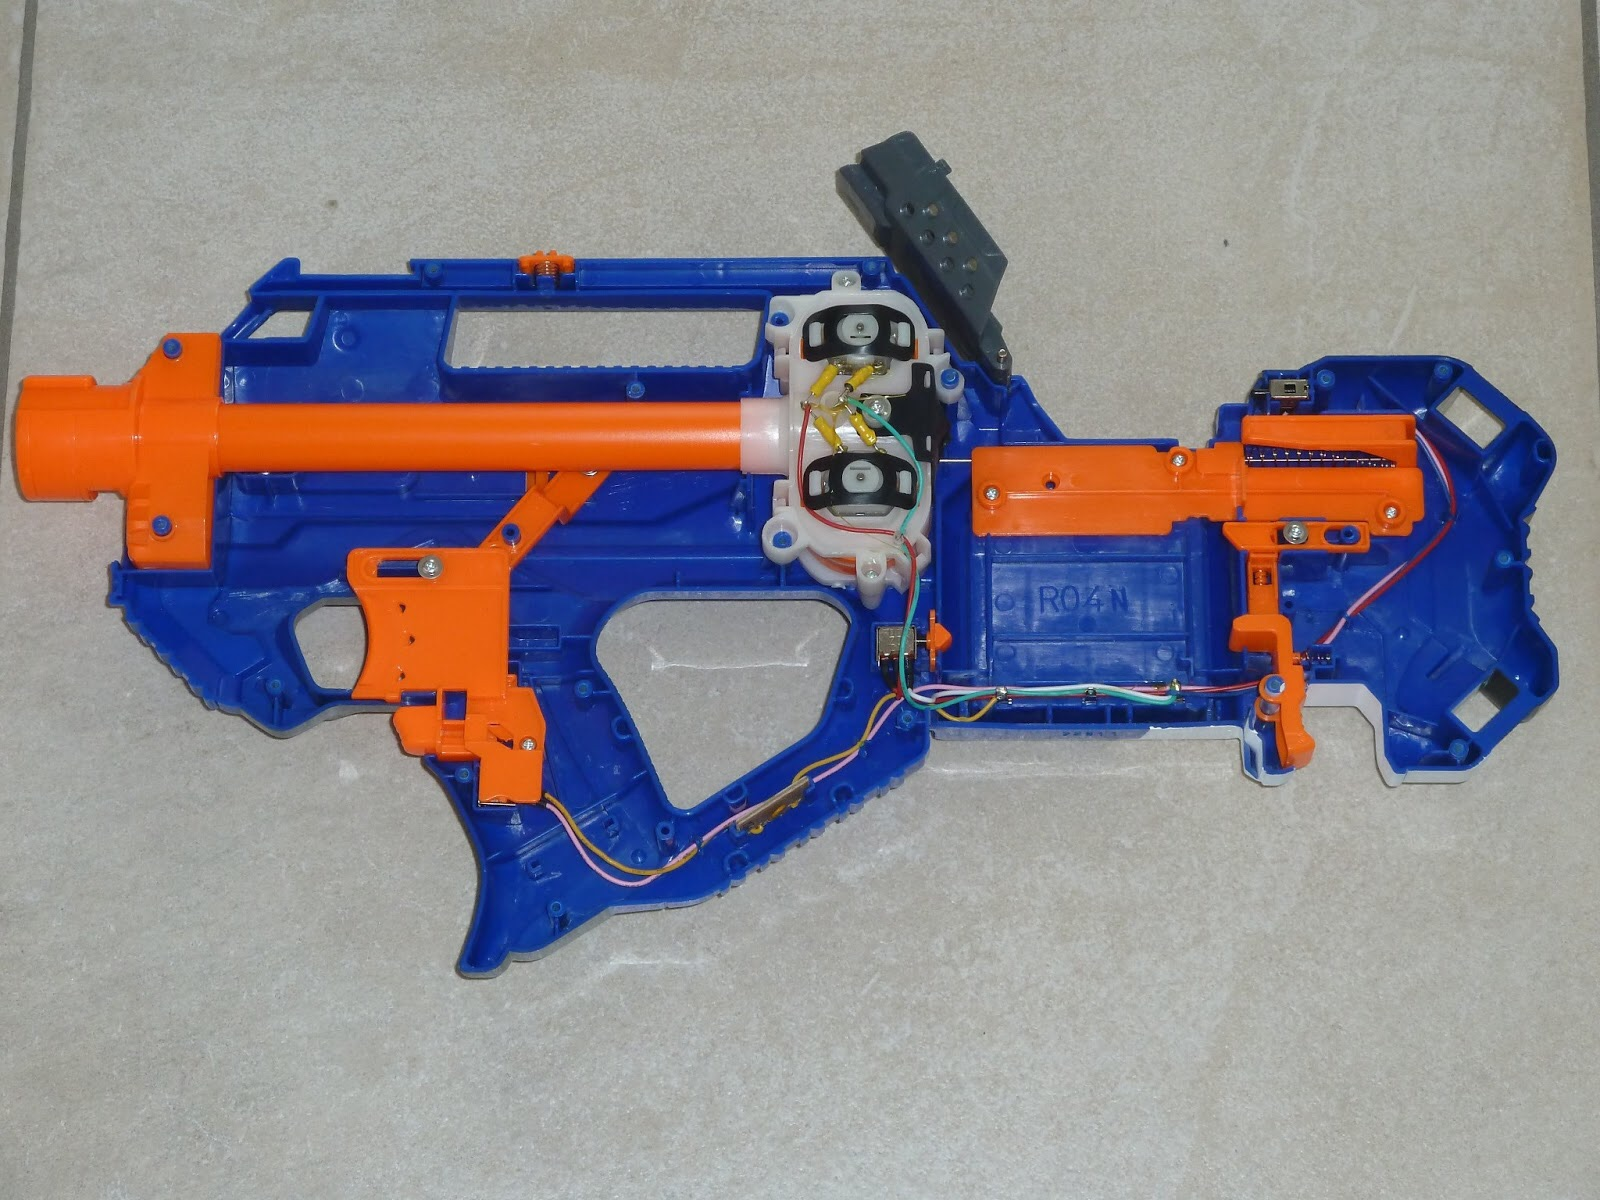 The internals of the Rayven CS 18 are a little bit sub standard for a blaster with flywheels as the Rayven is of the bullpup type It has a firing trigger